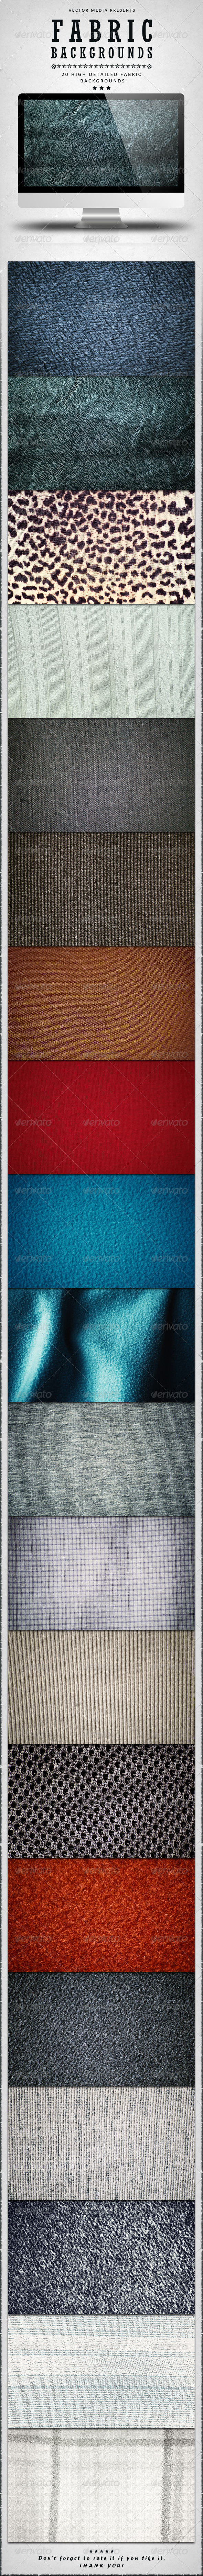 Fabric Backgrounds - Miscellaneous Backgrounds